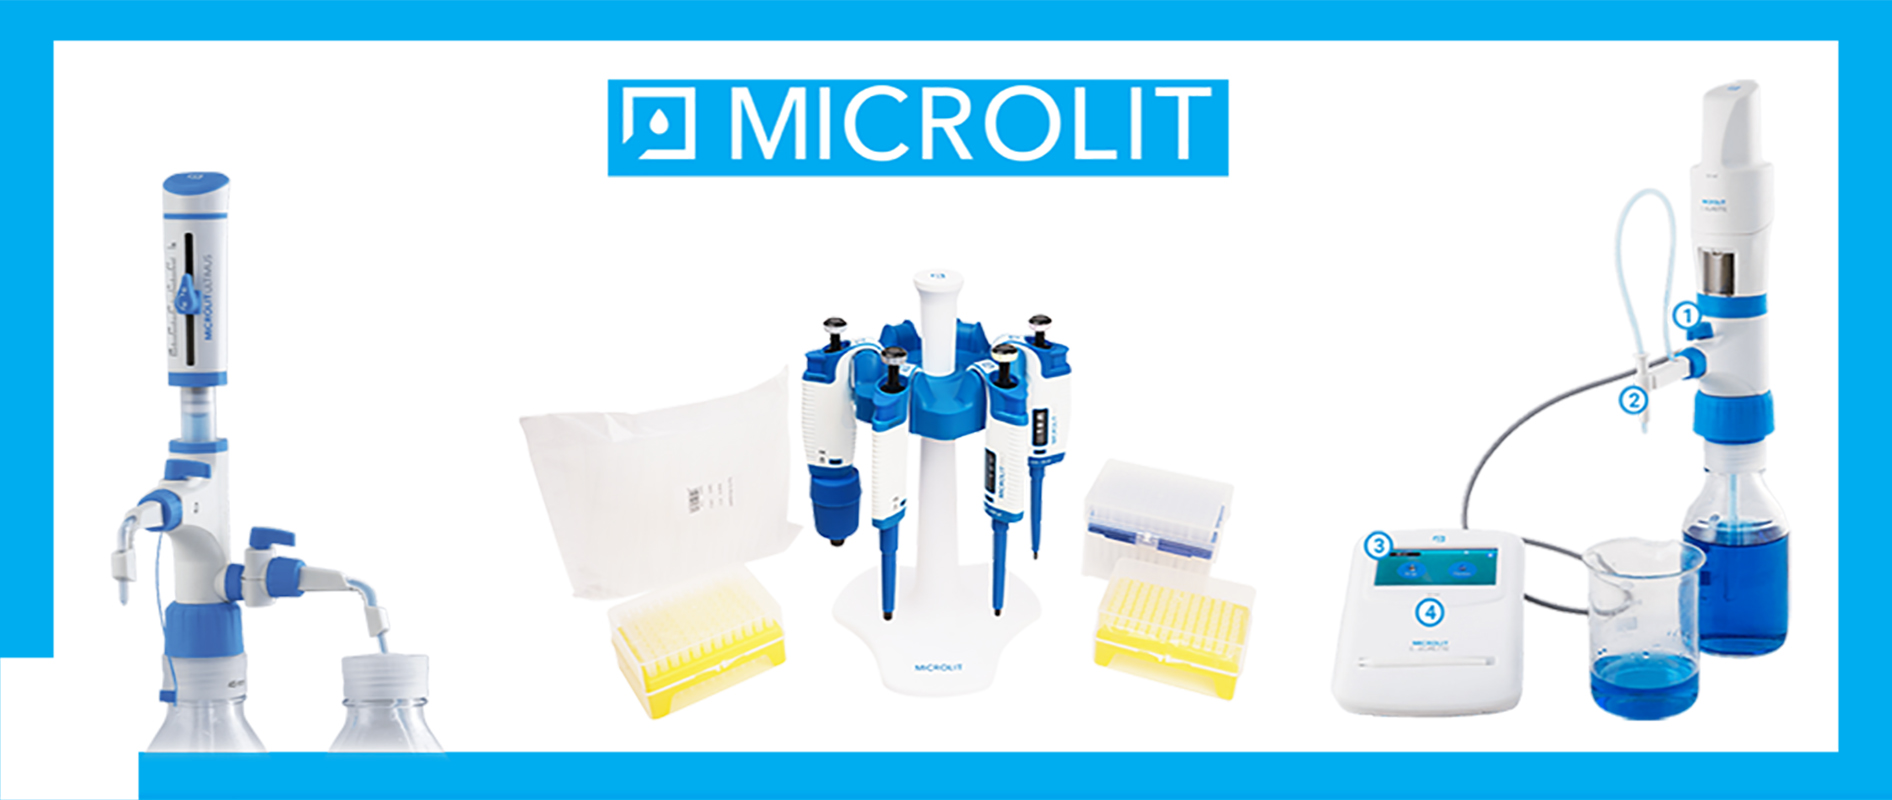 Micropipettes, Bottle Top Dispensers, Electronic Pipette Filling Device, E-burette, Pipette stands and tips.